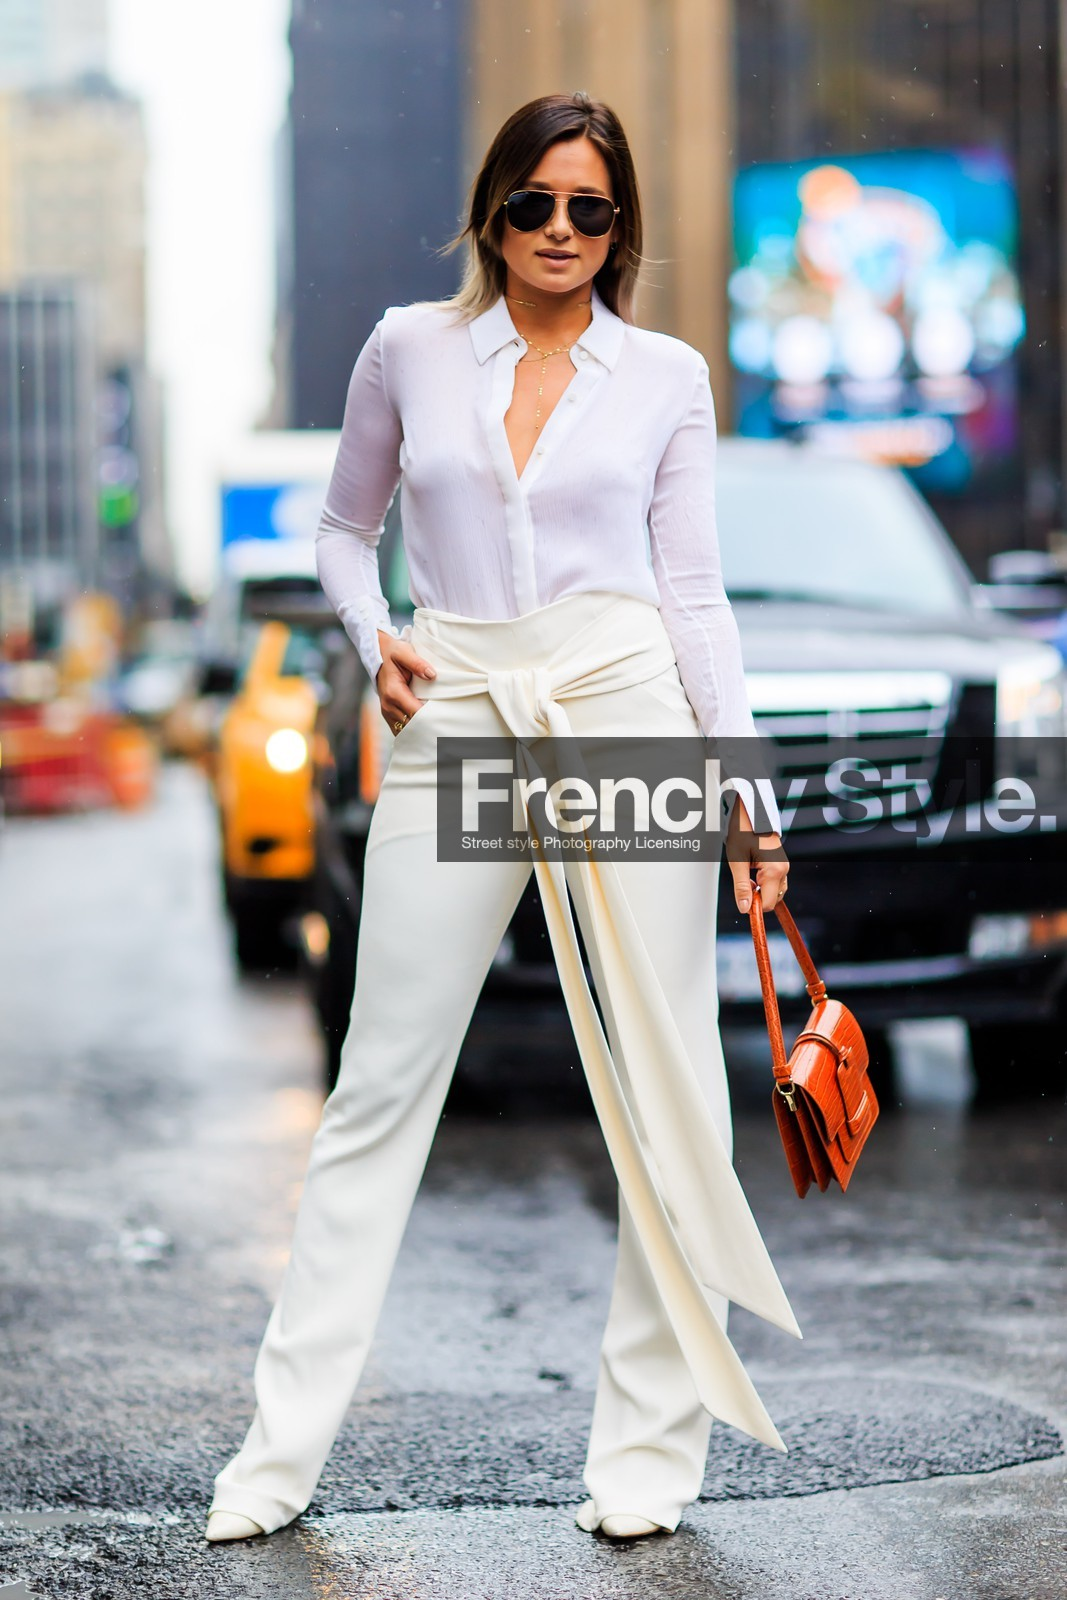 1609m0842 jpg frenchy style style by jonathan paciullo 1509ny0004 jpg frenchy style style by jonathan paciullo